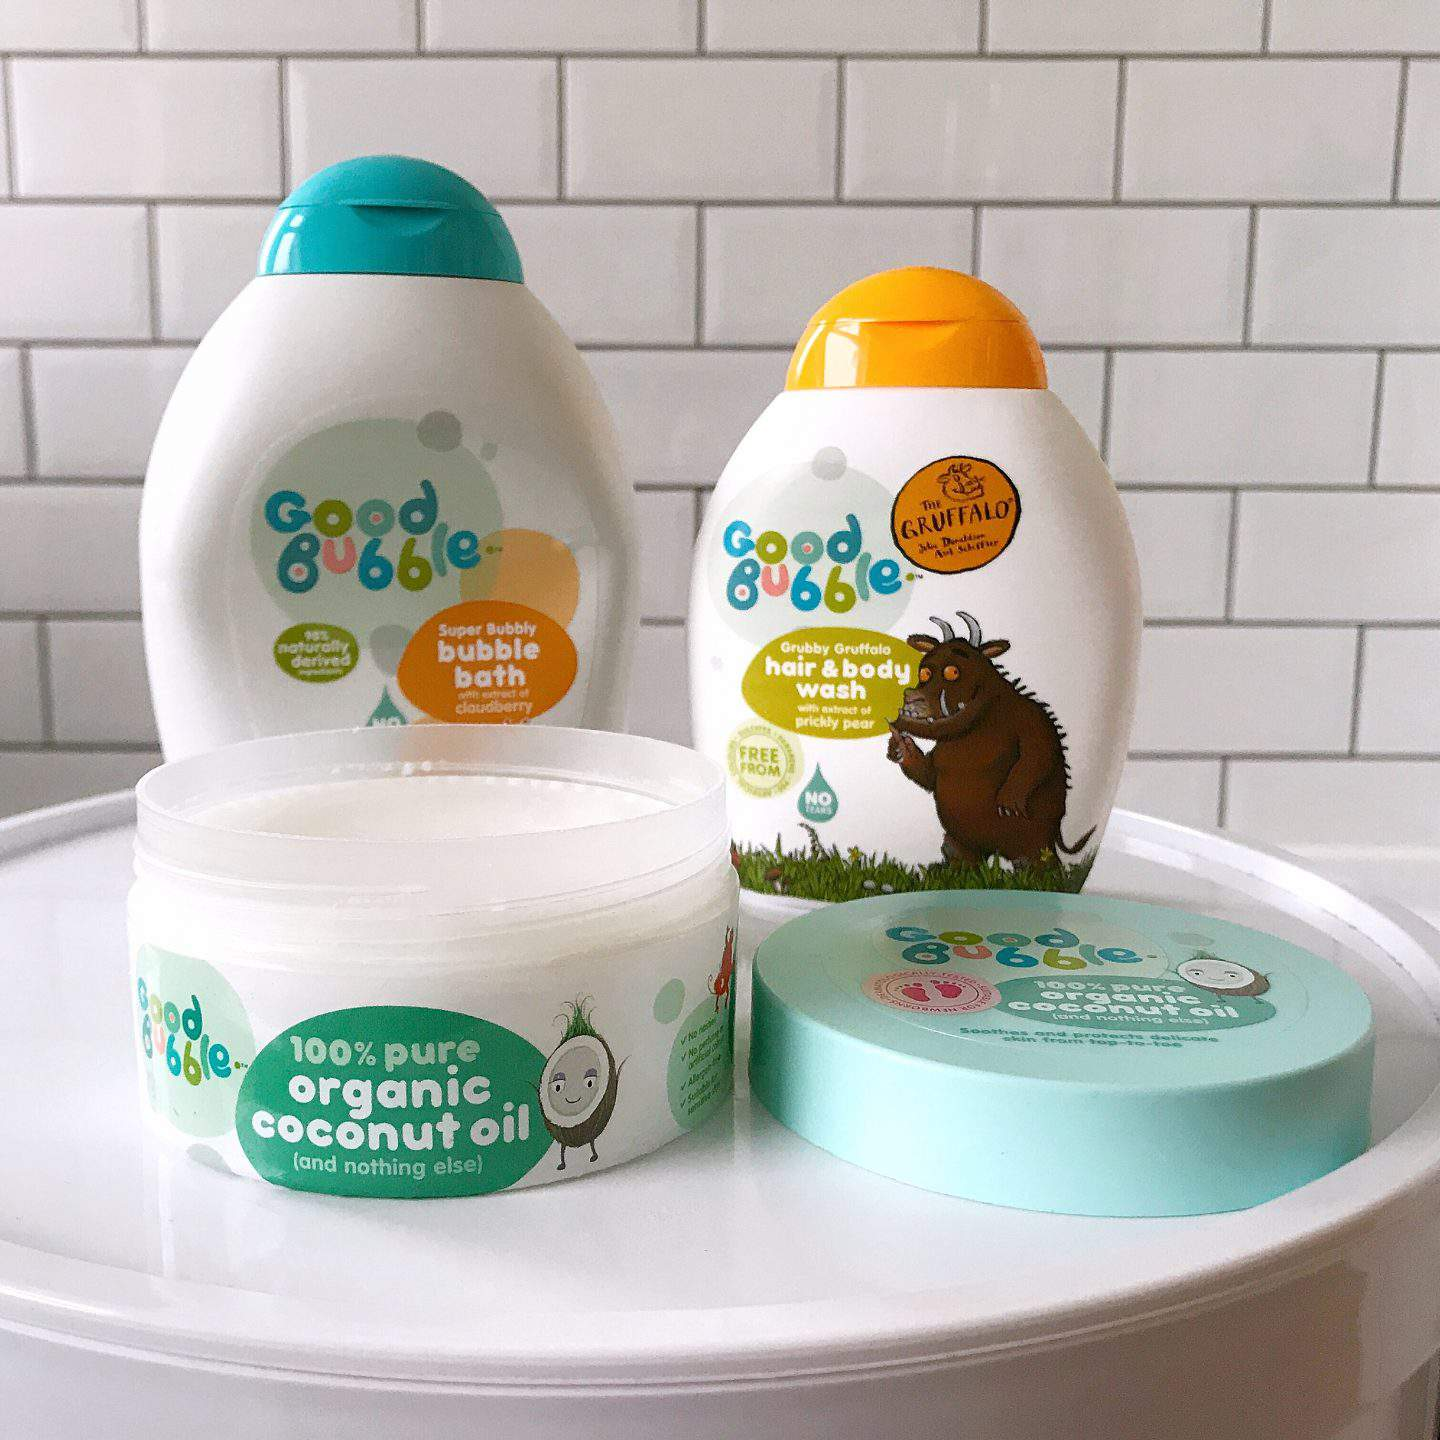 Good Bubble kids clean bubble bath, hair & body wash and organic coconut oil